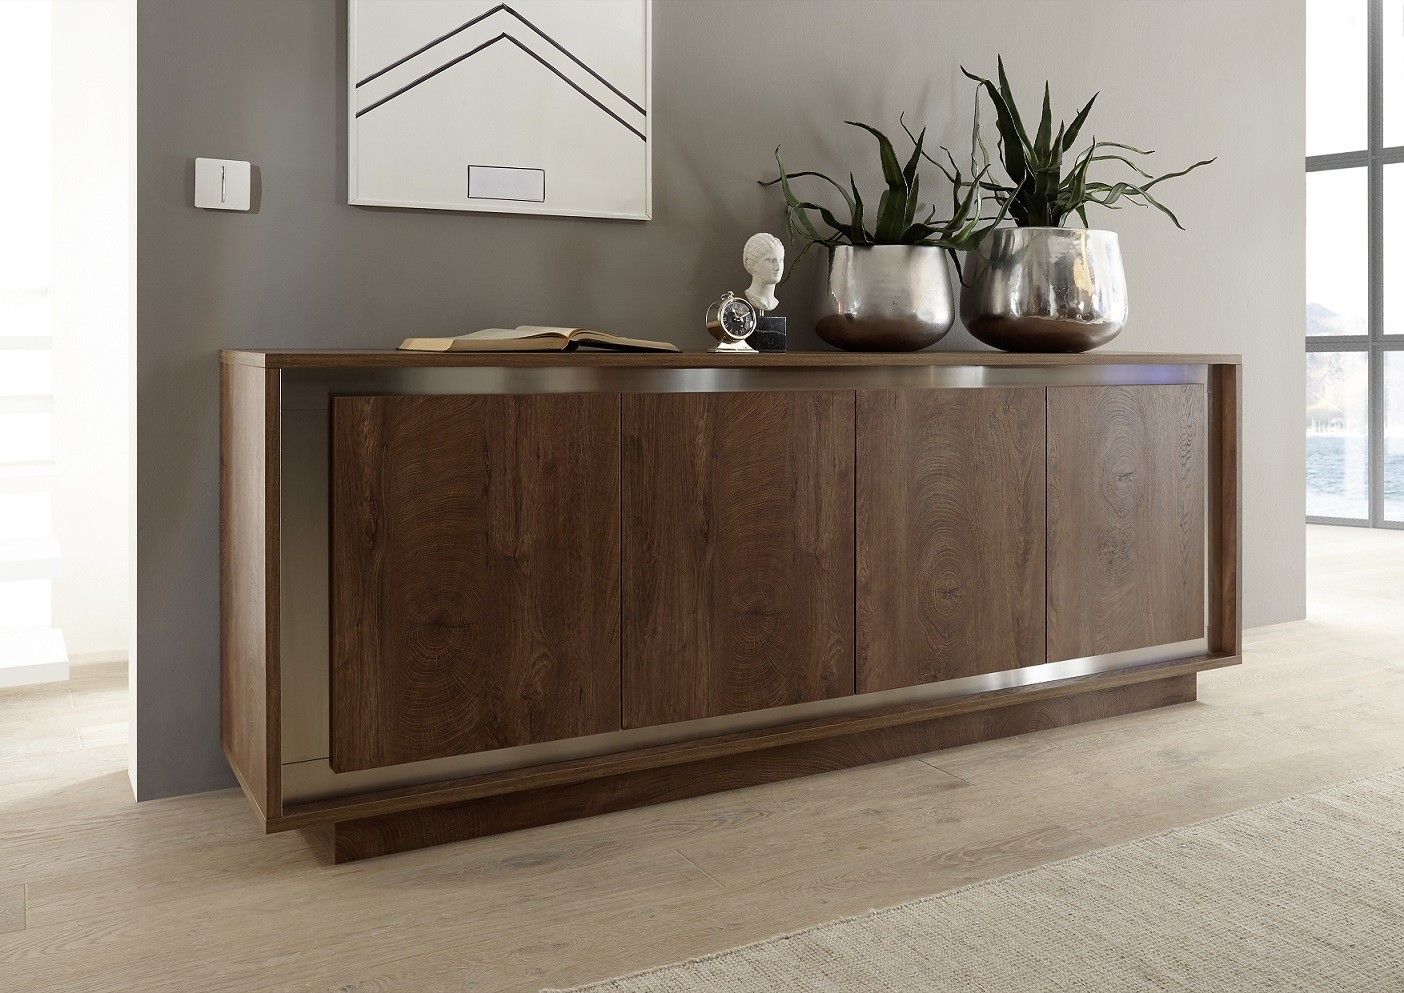 Sideboard Modern Amber Modern Sideboard In Oak Cognac Finish With Inlays - Sideboards (2542) - Sena Home Furniture